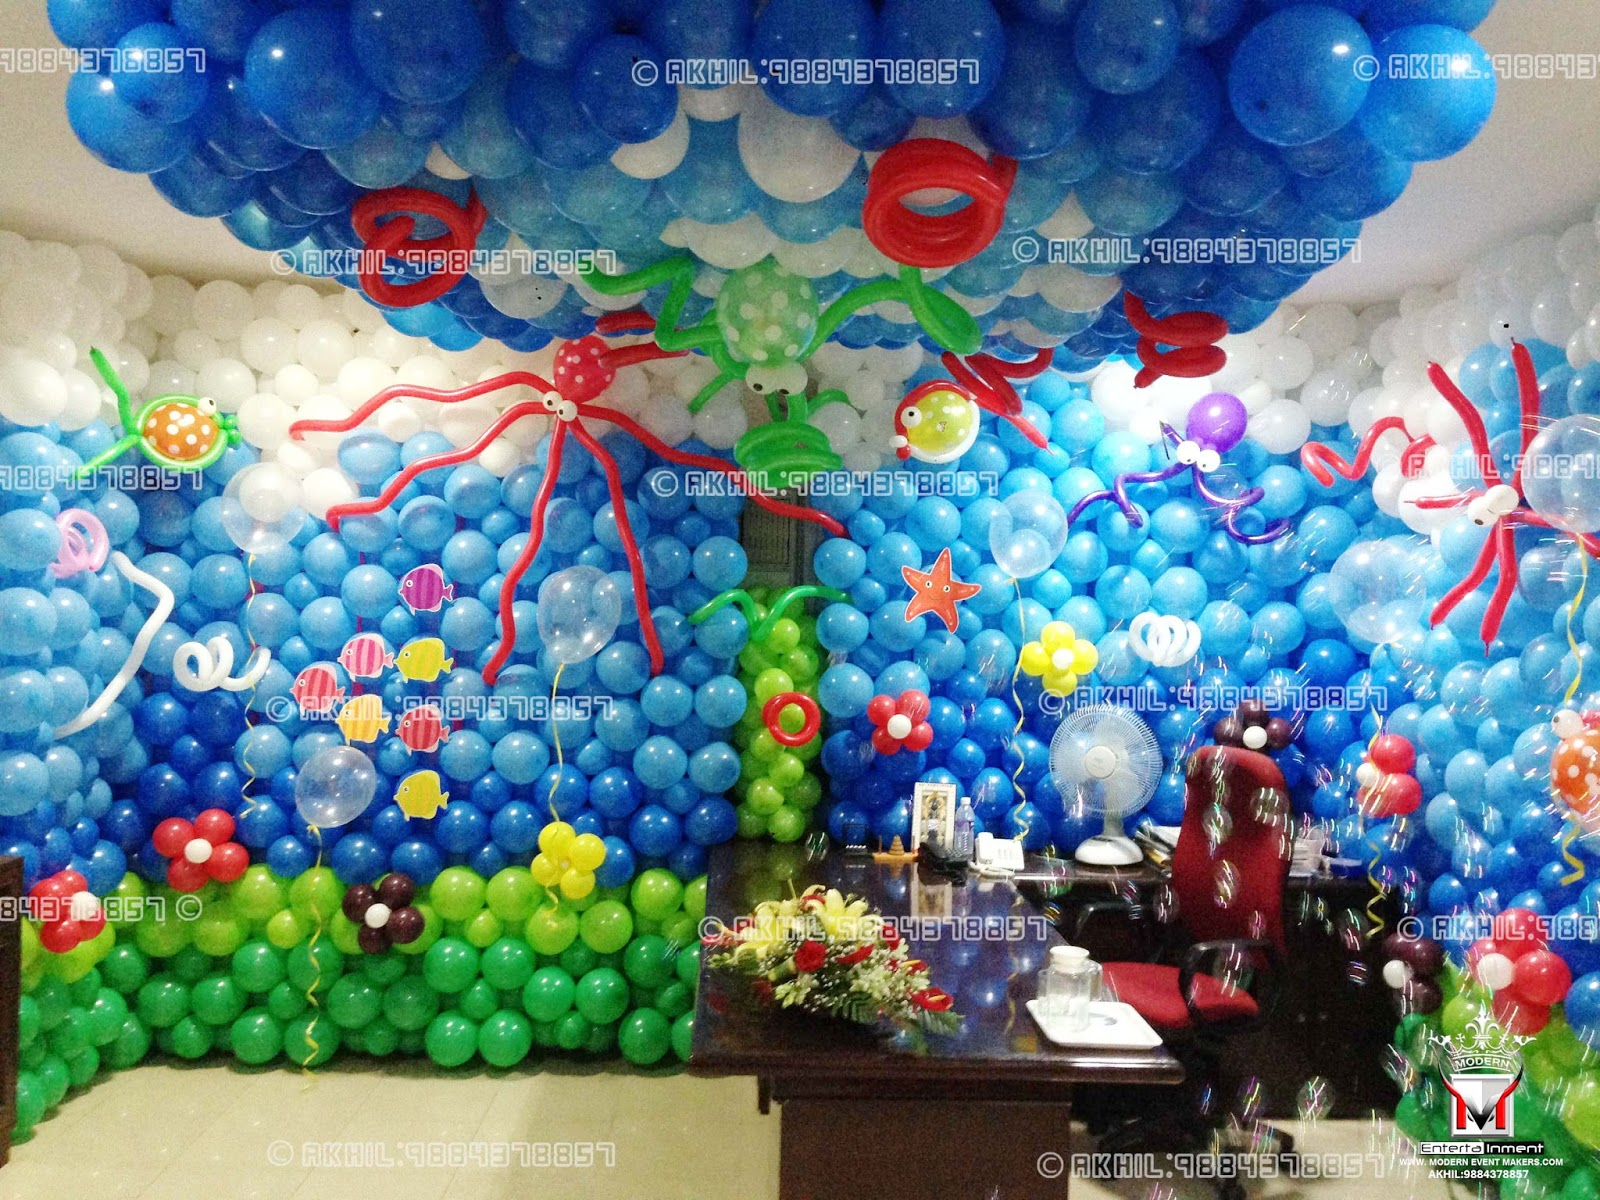 A top class balloon decorators in chennai akhil 9884378857 for Birthday balloon ideas